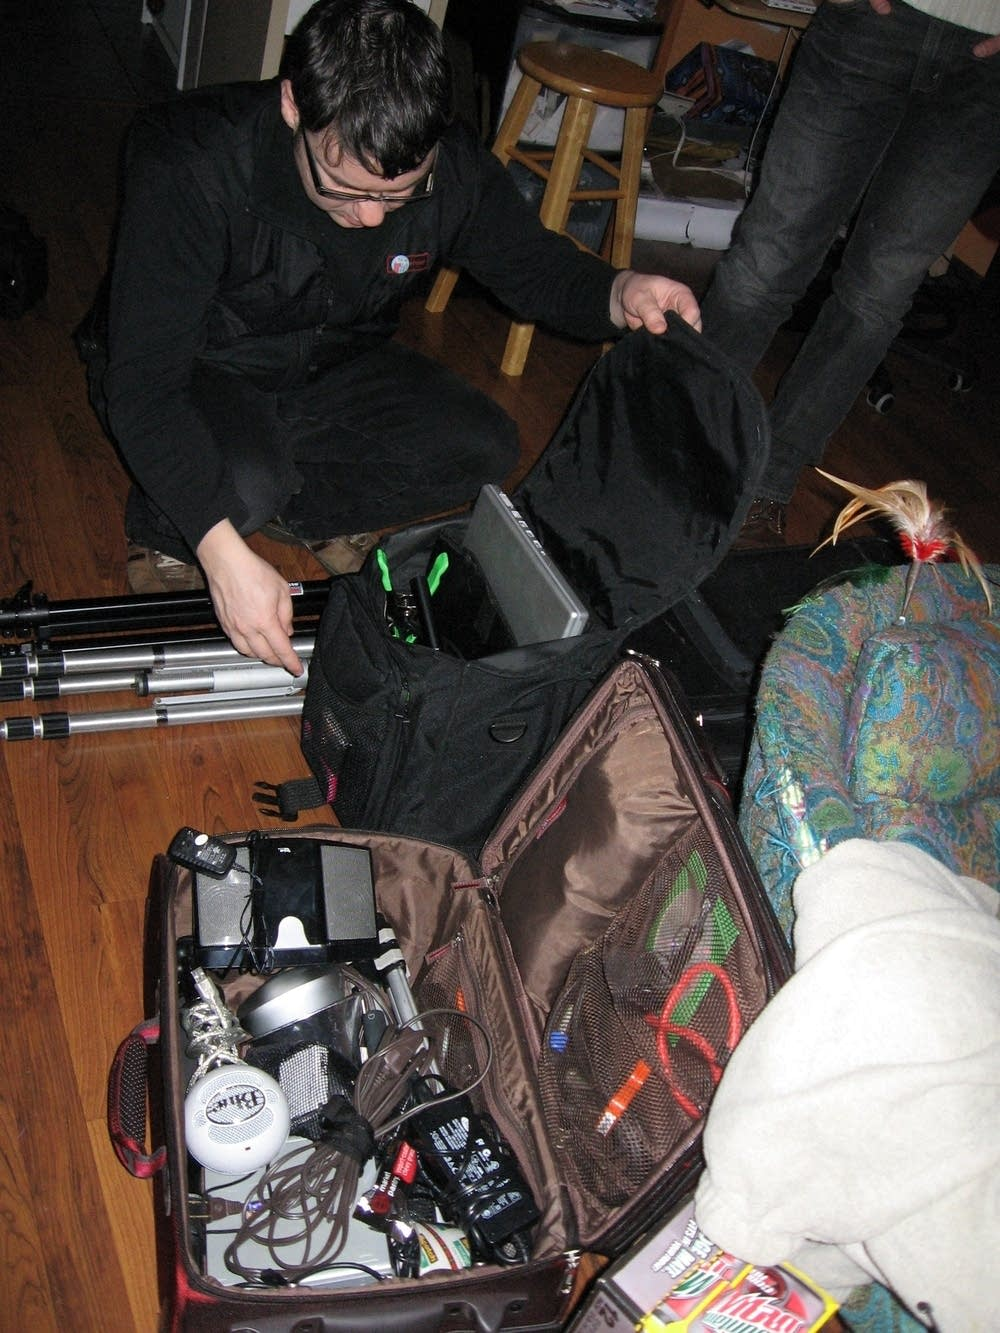 Packing video gear